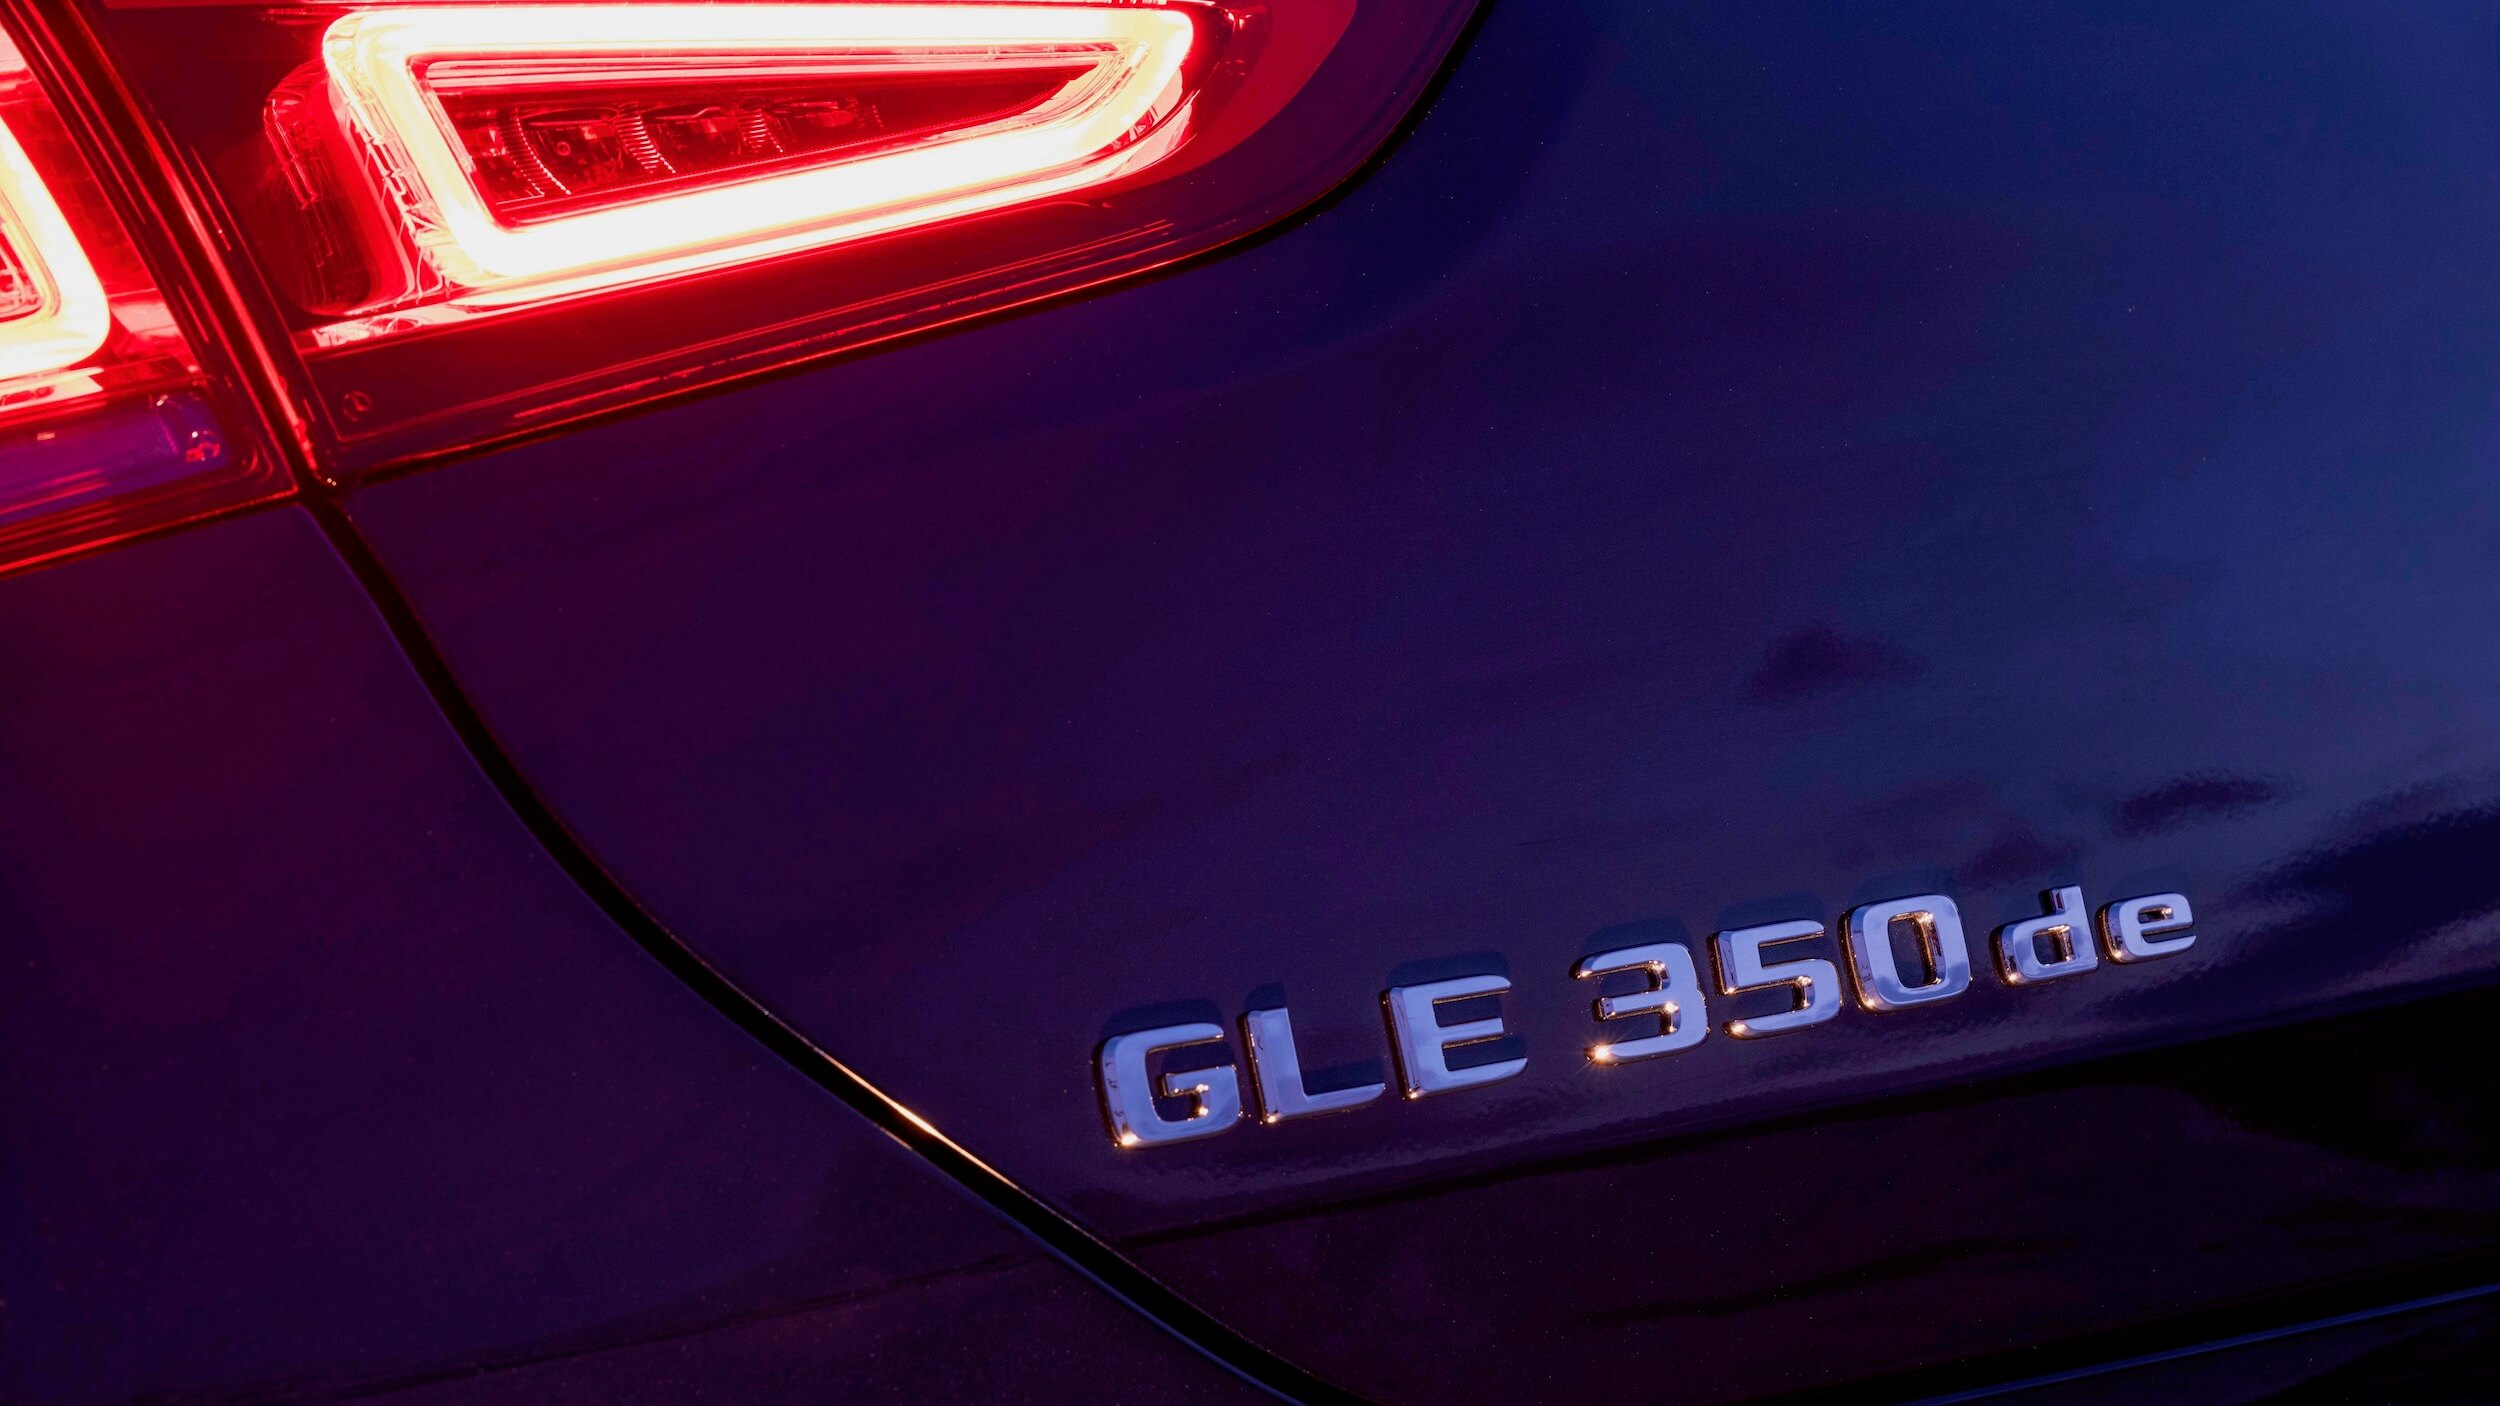 Mercedes GLE 350de badge